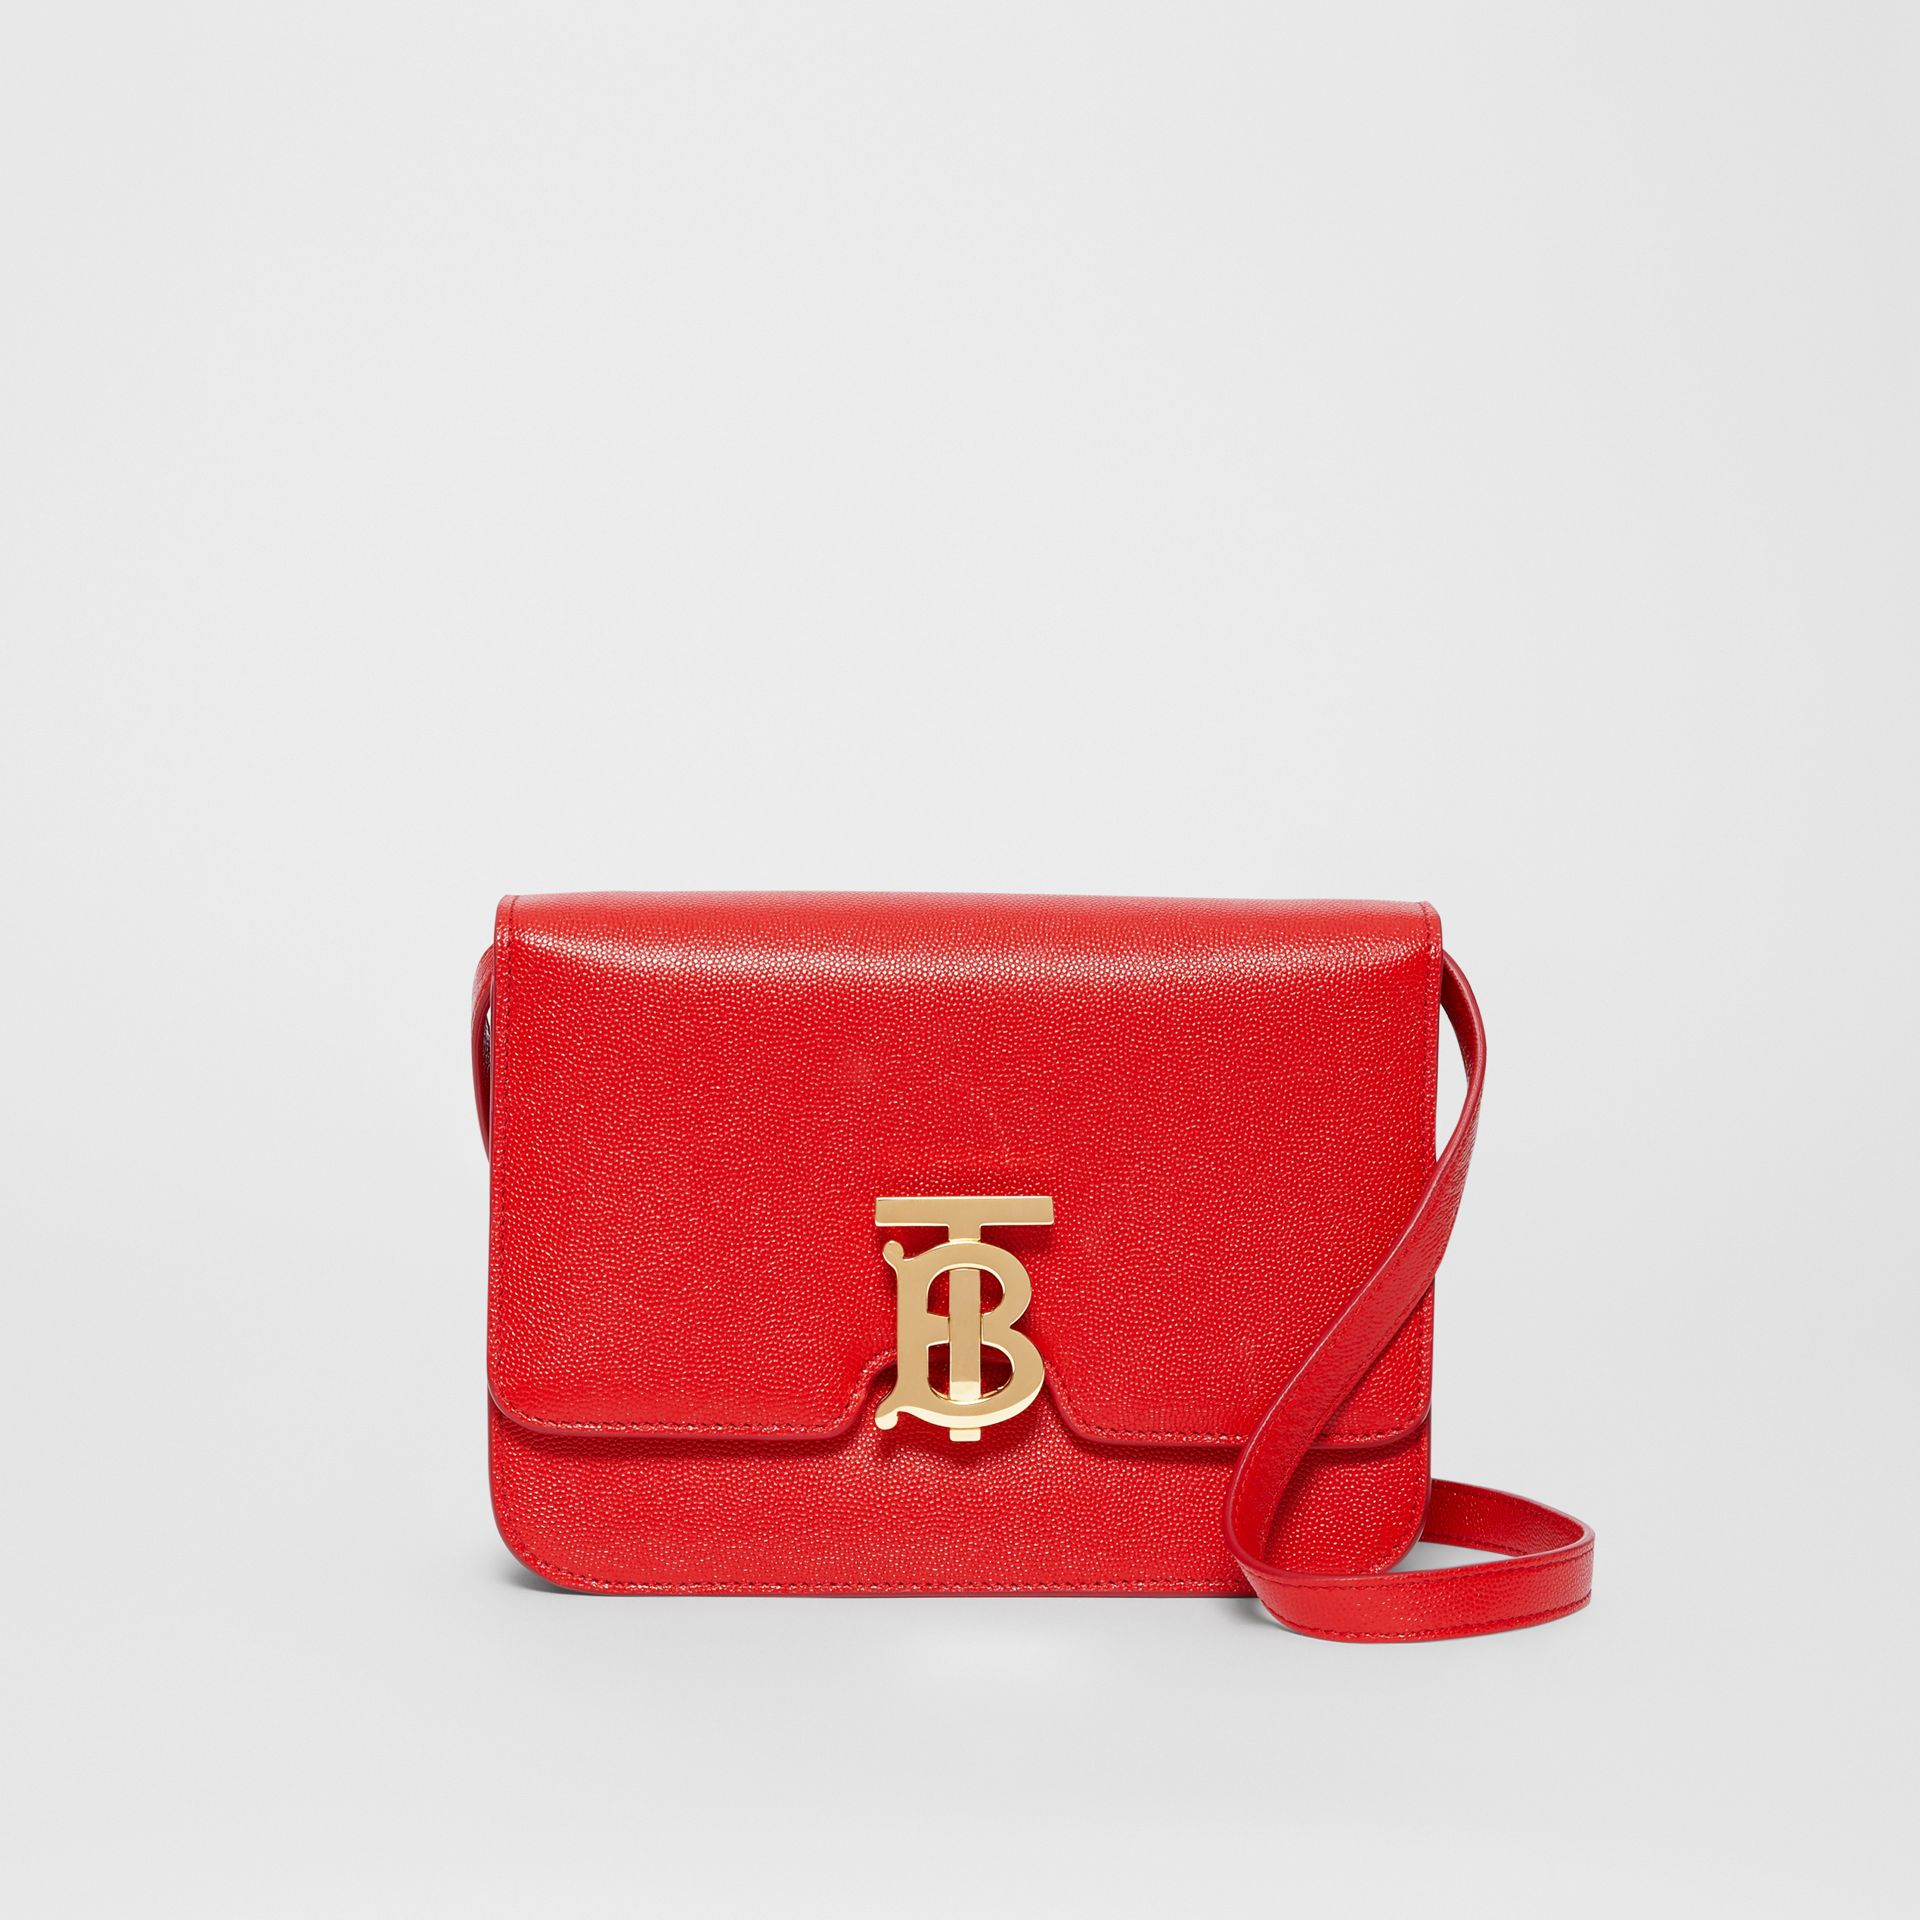 Small Grainy Leather TB Bag in Bright Red - Women | Burberry Australia - gallery image 0